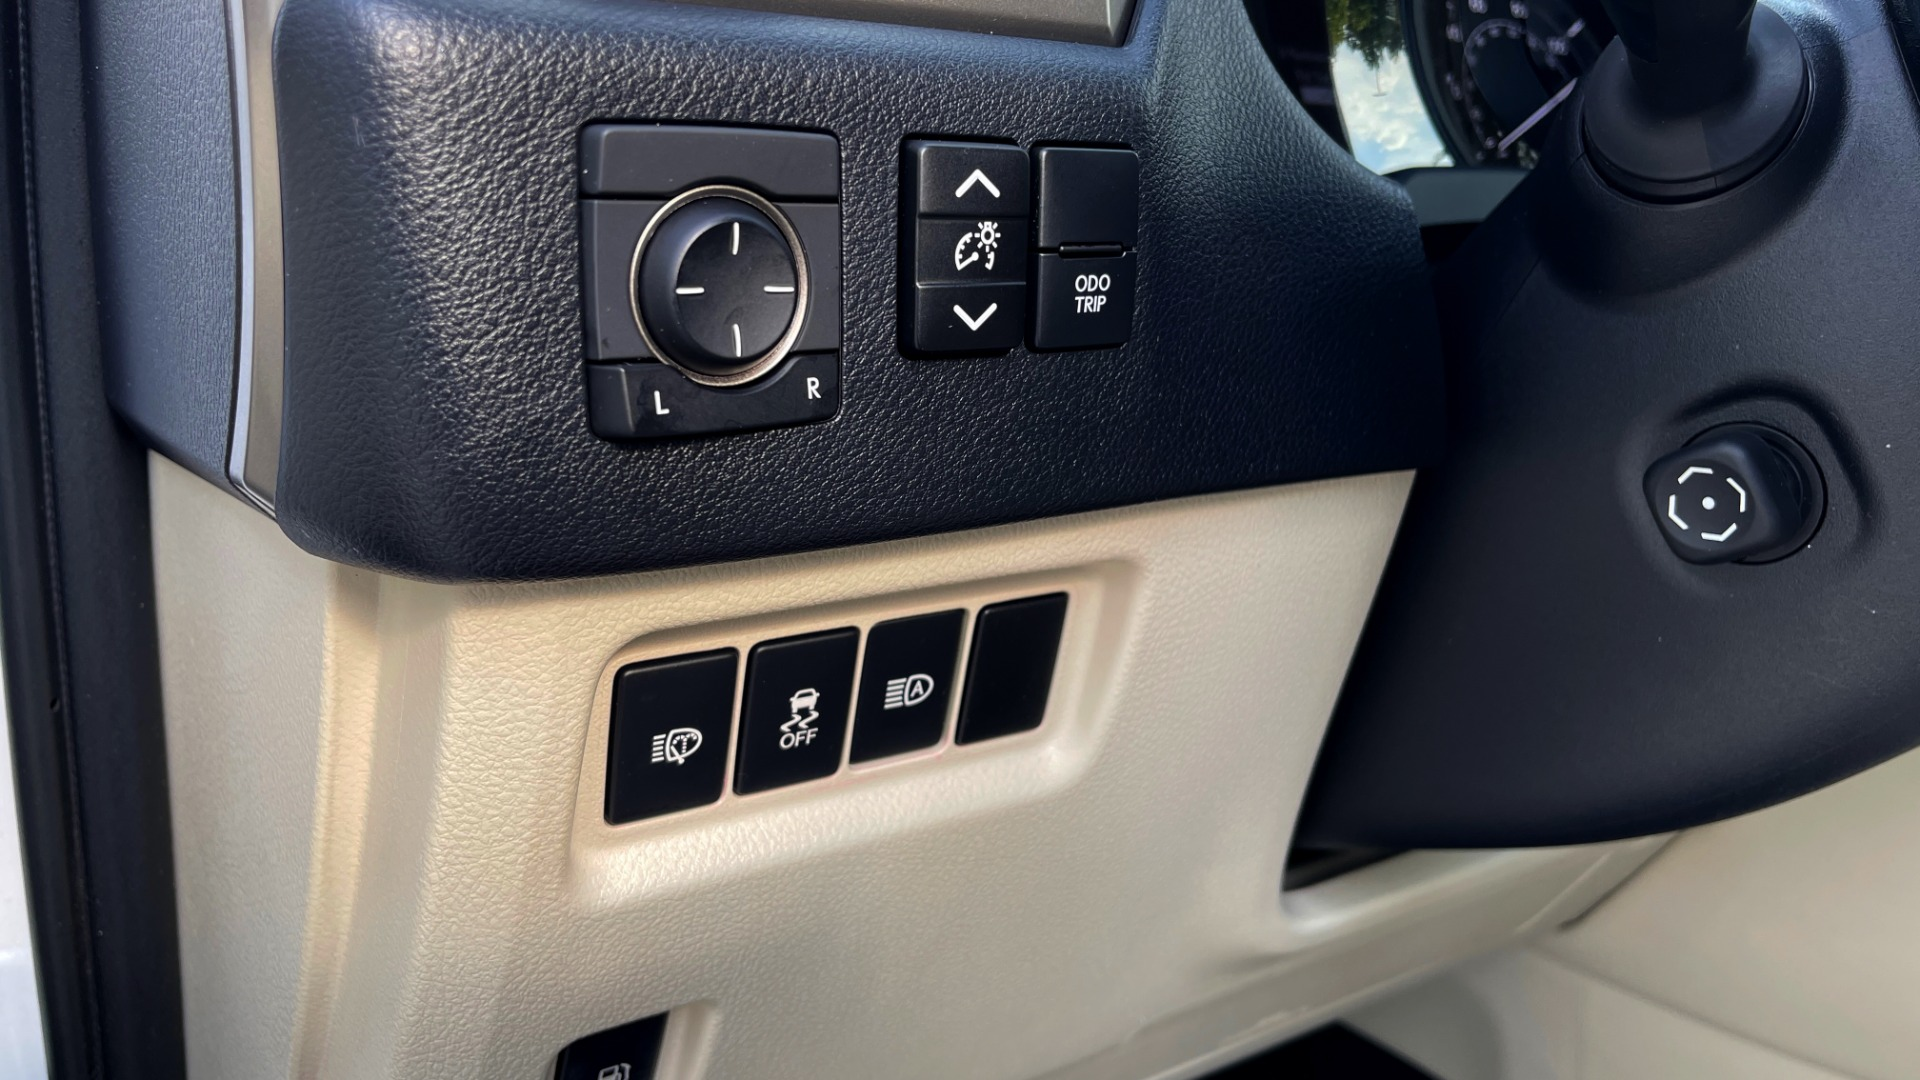 Used 2020 Lexus GX 460 PREMIUM / AWD / NAV / SUNROOF / 3-ROW / REARVIEW for sale $54,495 at Formula Imports in Charlotte NC 28227 31